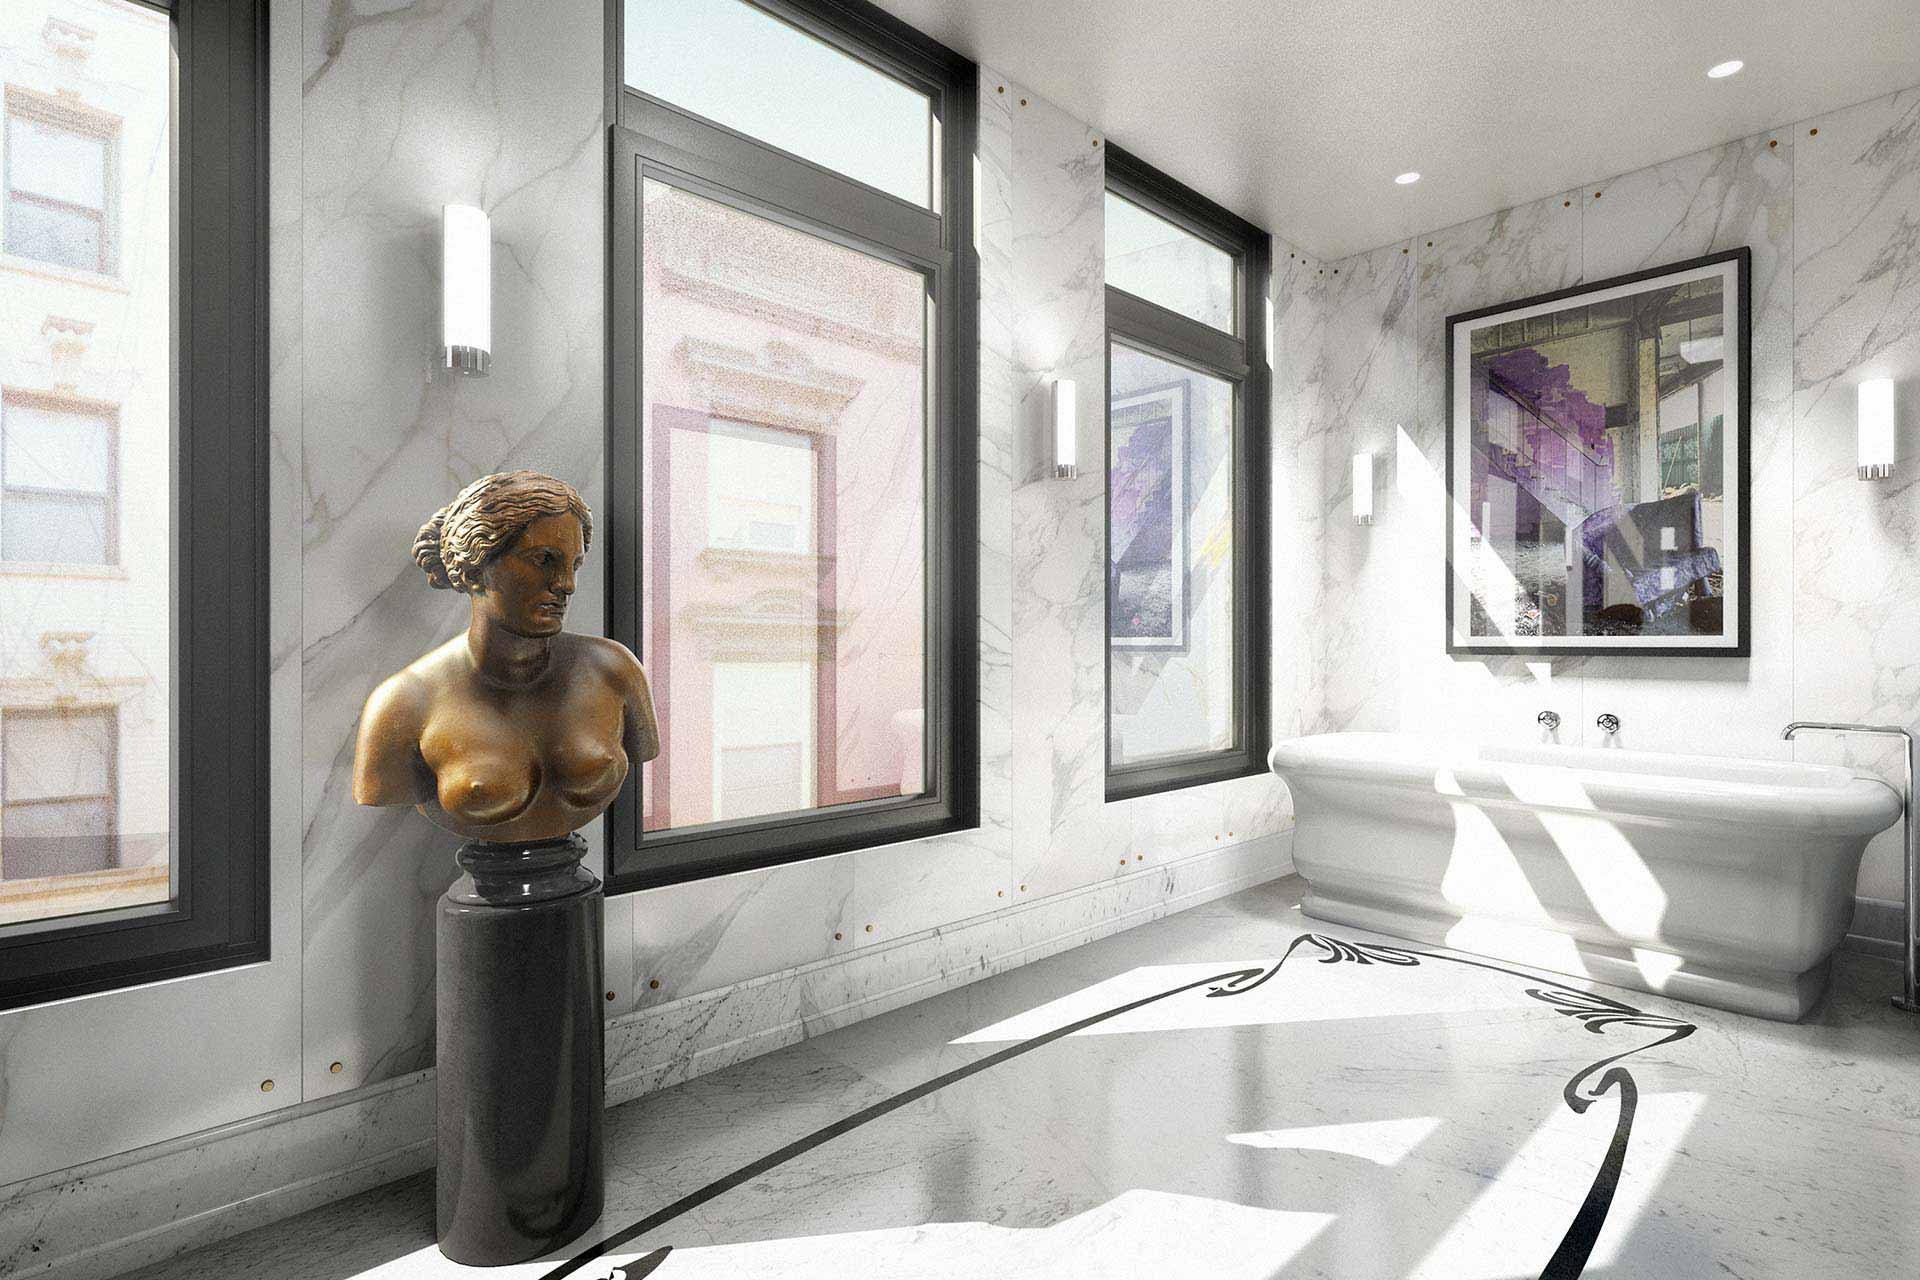 Master bathroom rendering with bronze statue